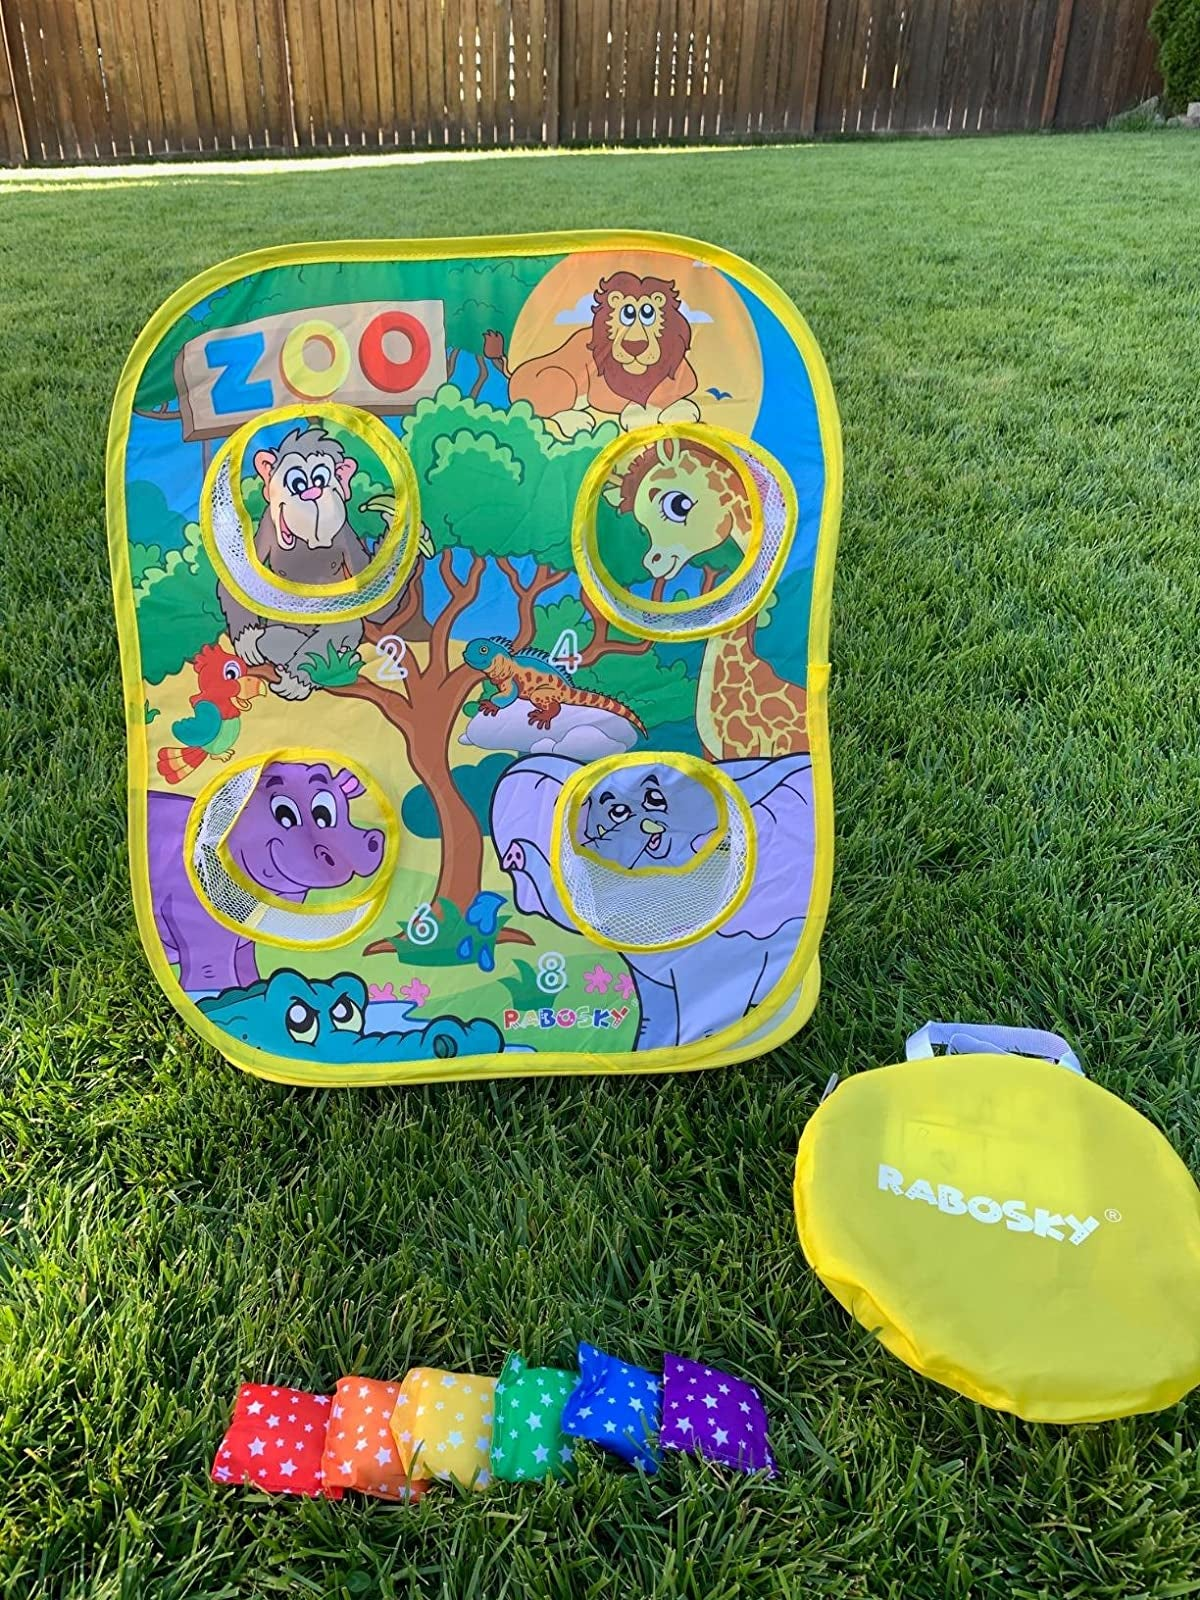 Reviewer photo of zoo animal bean game with colorful bean bags and carrying case